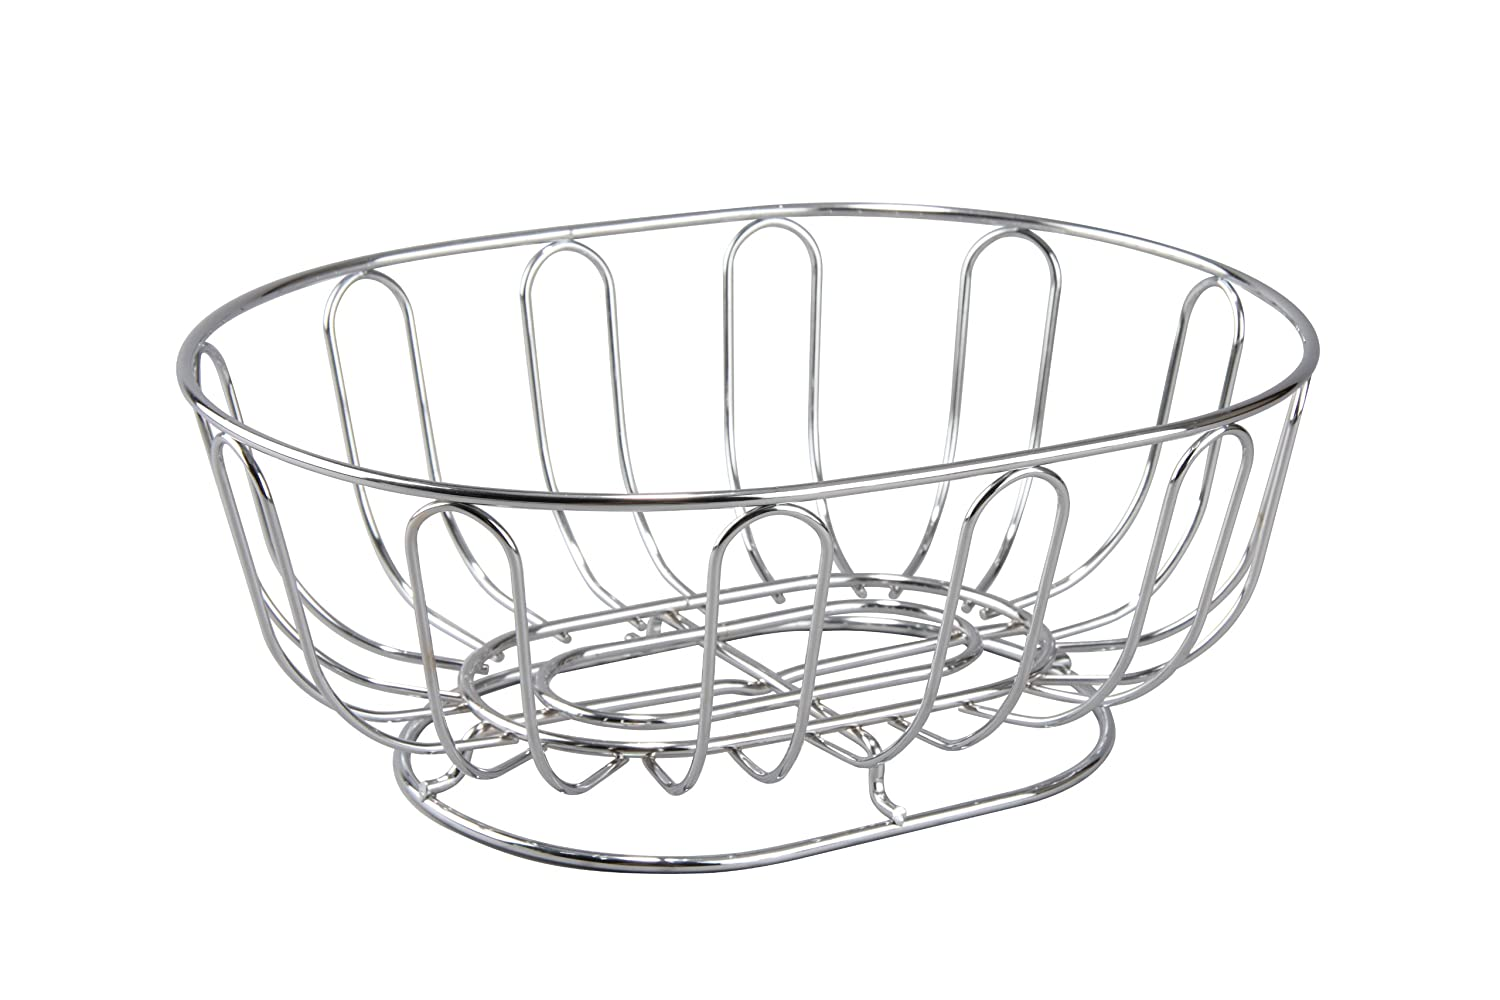 Cuisinox Oval Bread Basket/Fruit Bowl, Stainless Steel Cuisinox (Import) BAS-2922